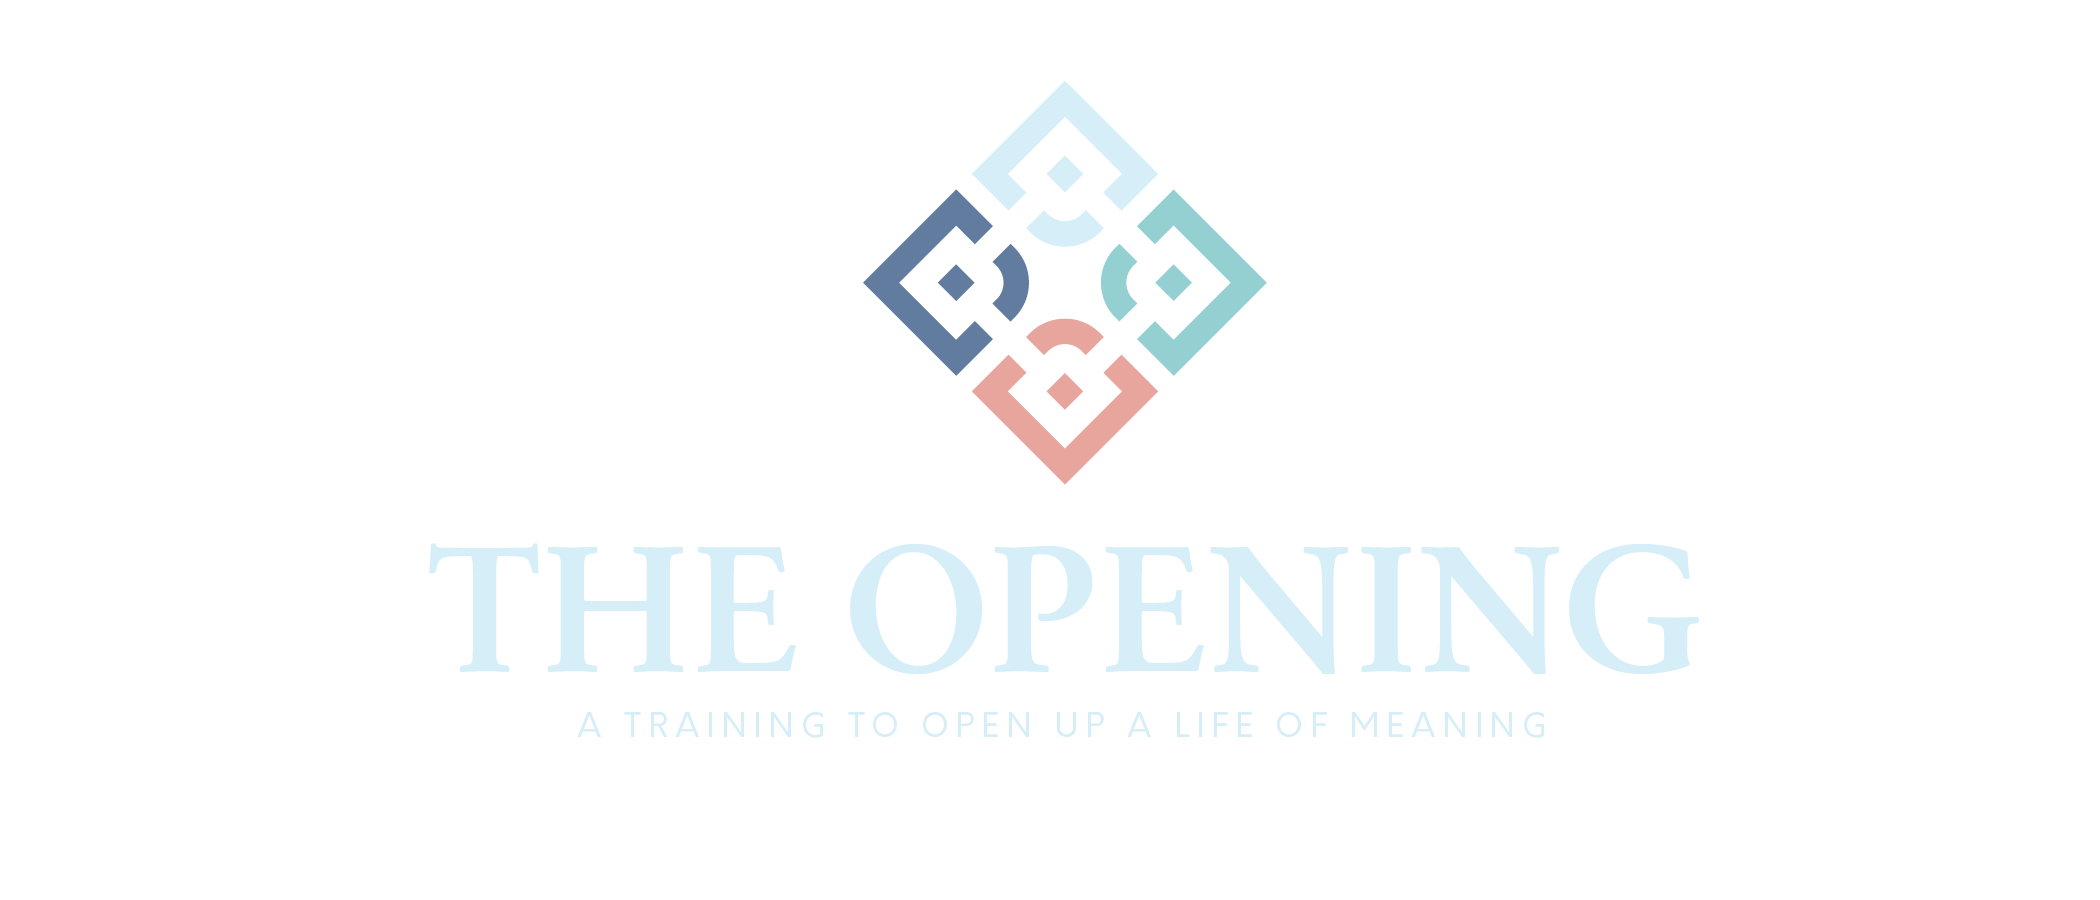 TheOpening-01.png